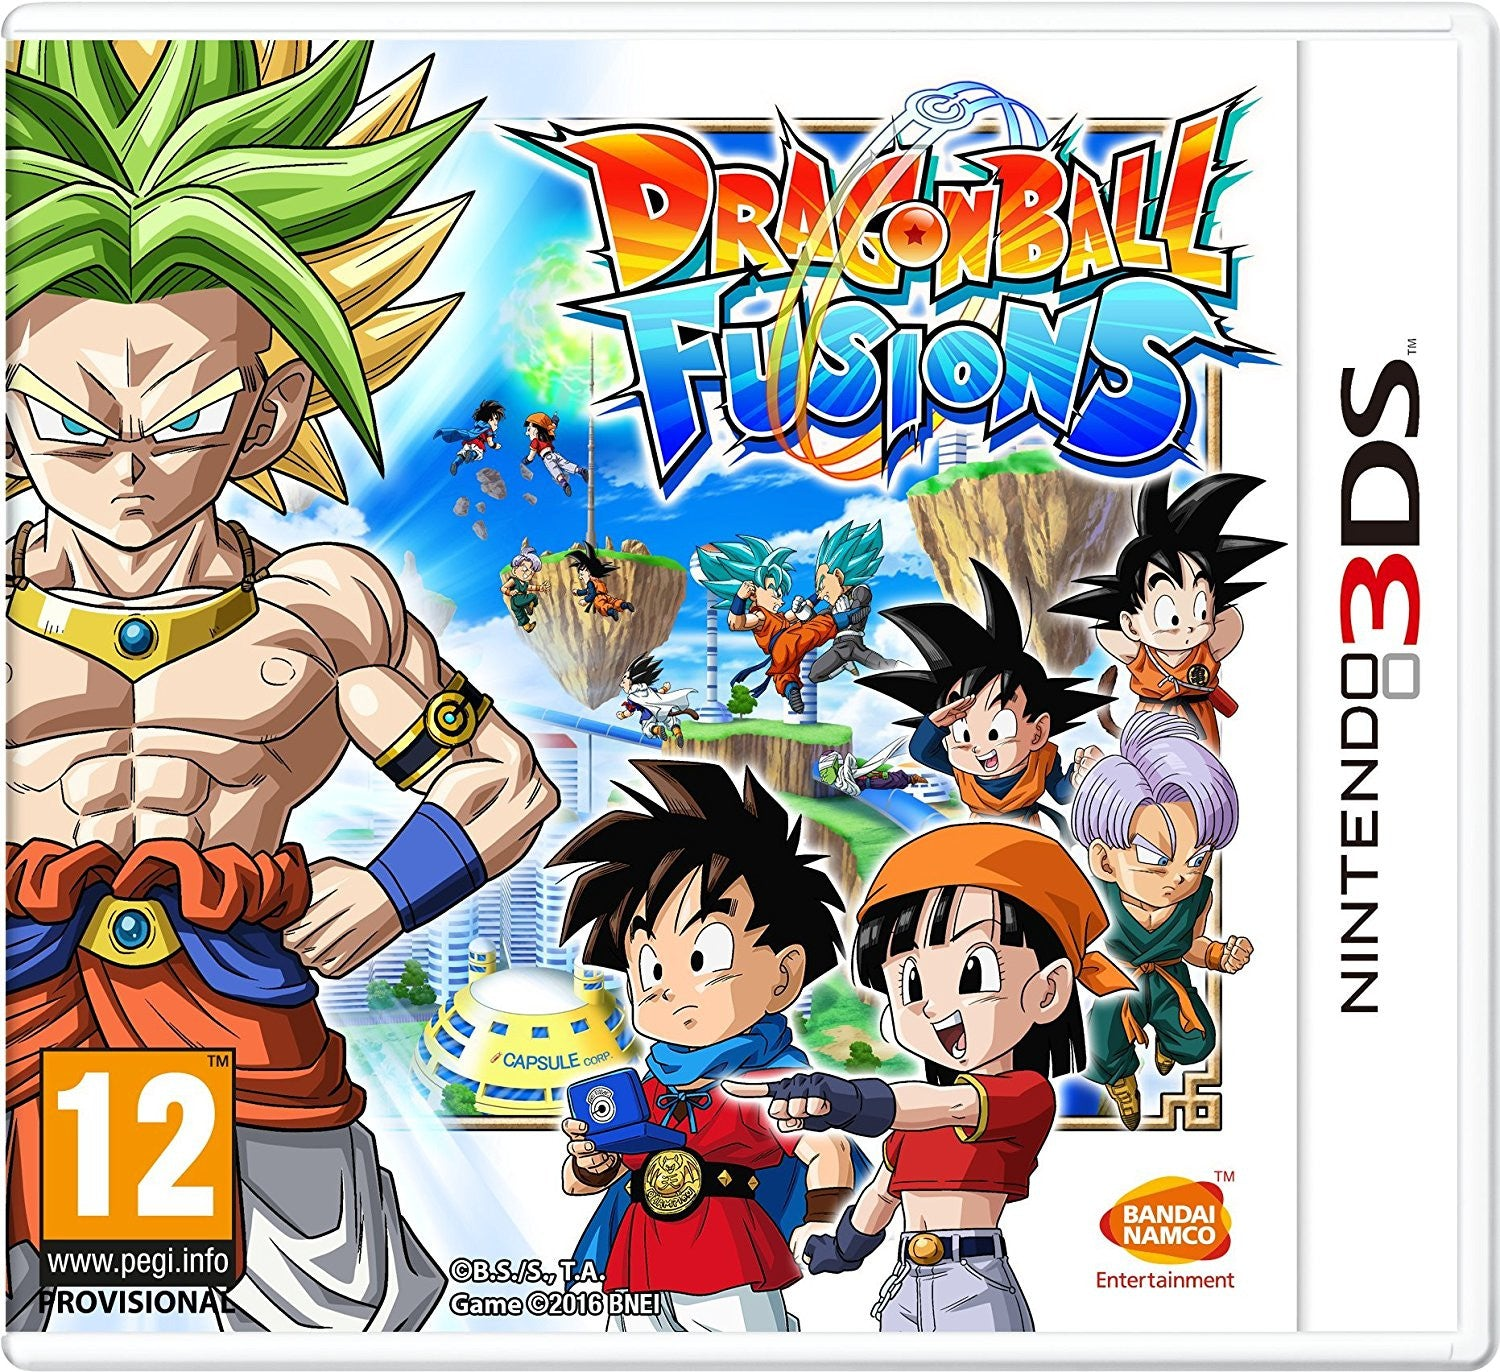 Drogon Ball Fusions - 3DS - Video Games by Bandai Namco Entertainment The Chelsea Gamer